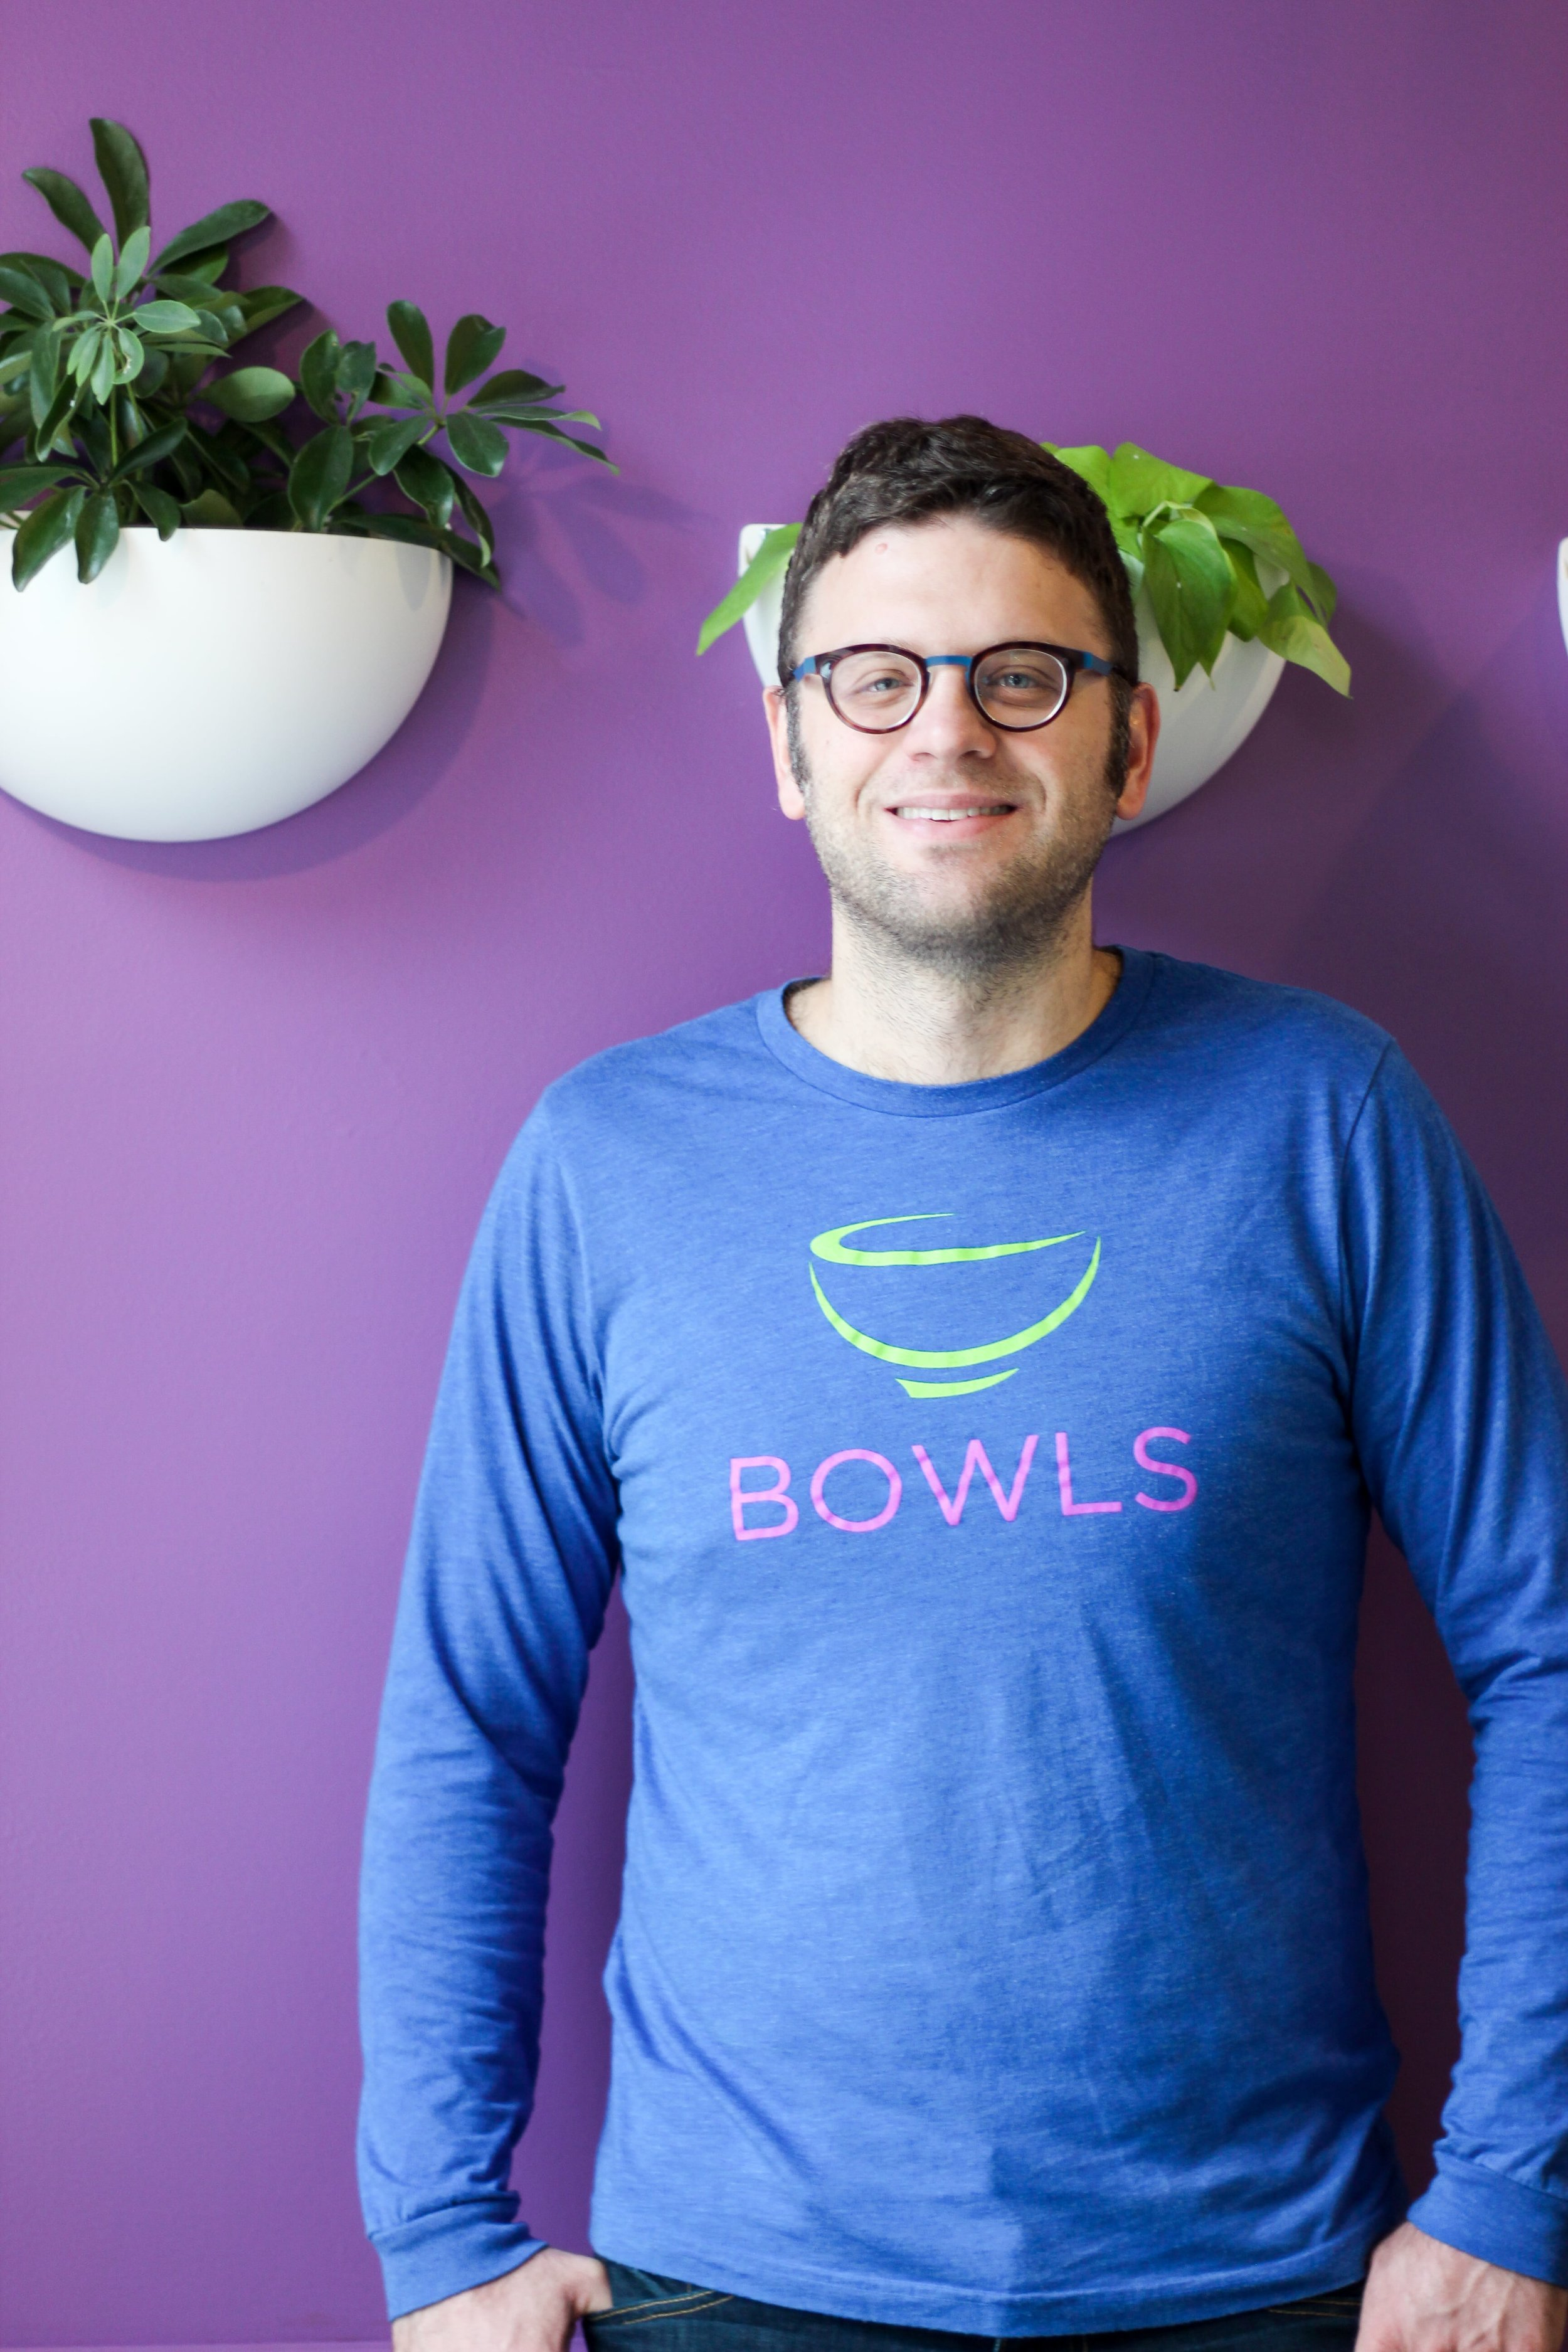 Andy Larson - Owner, Bowls 2-min.jpg